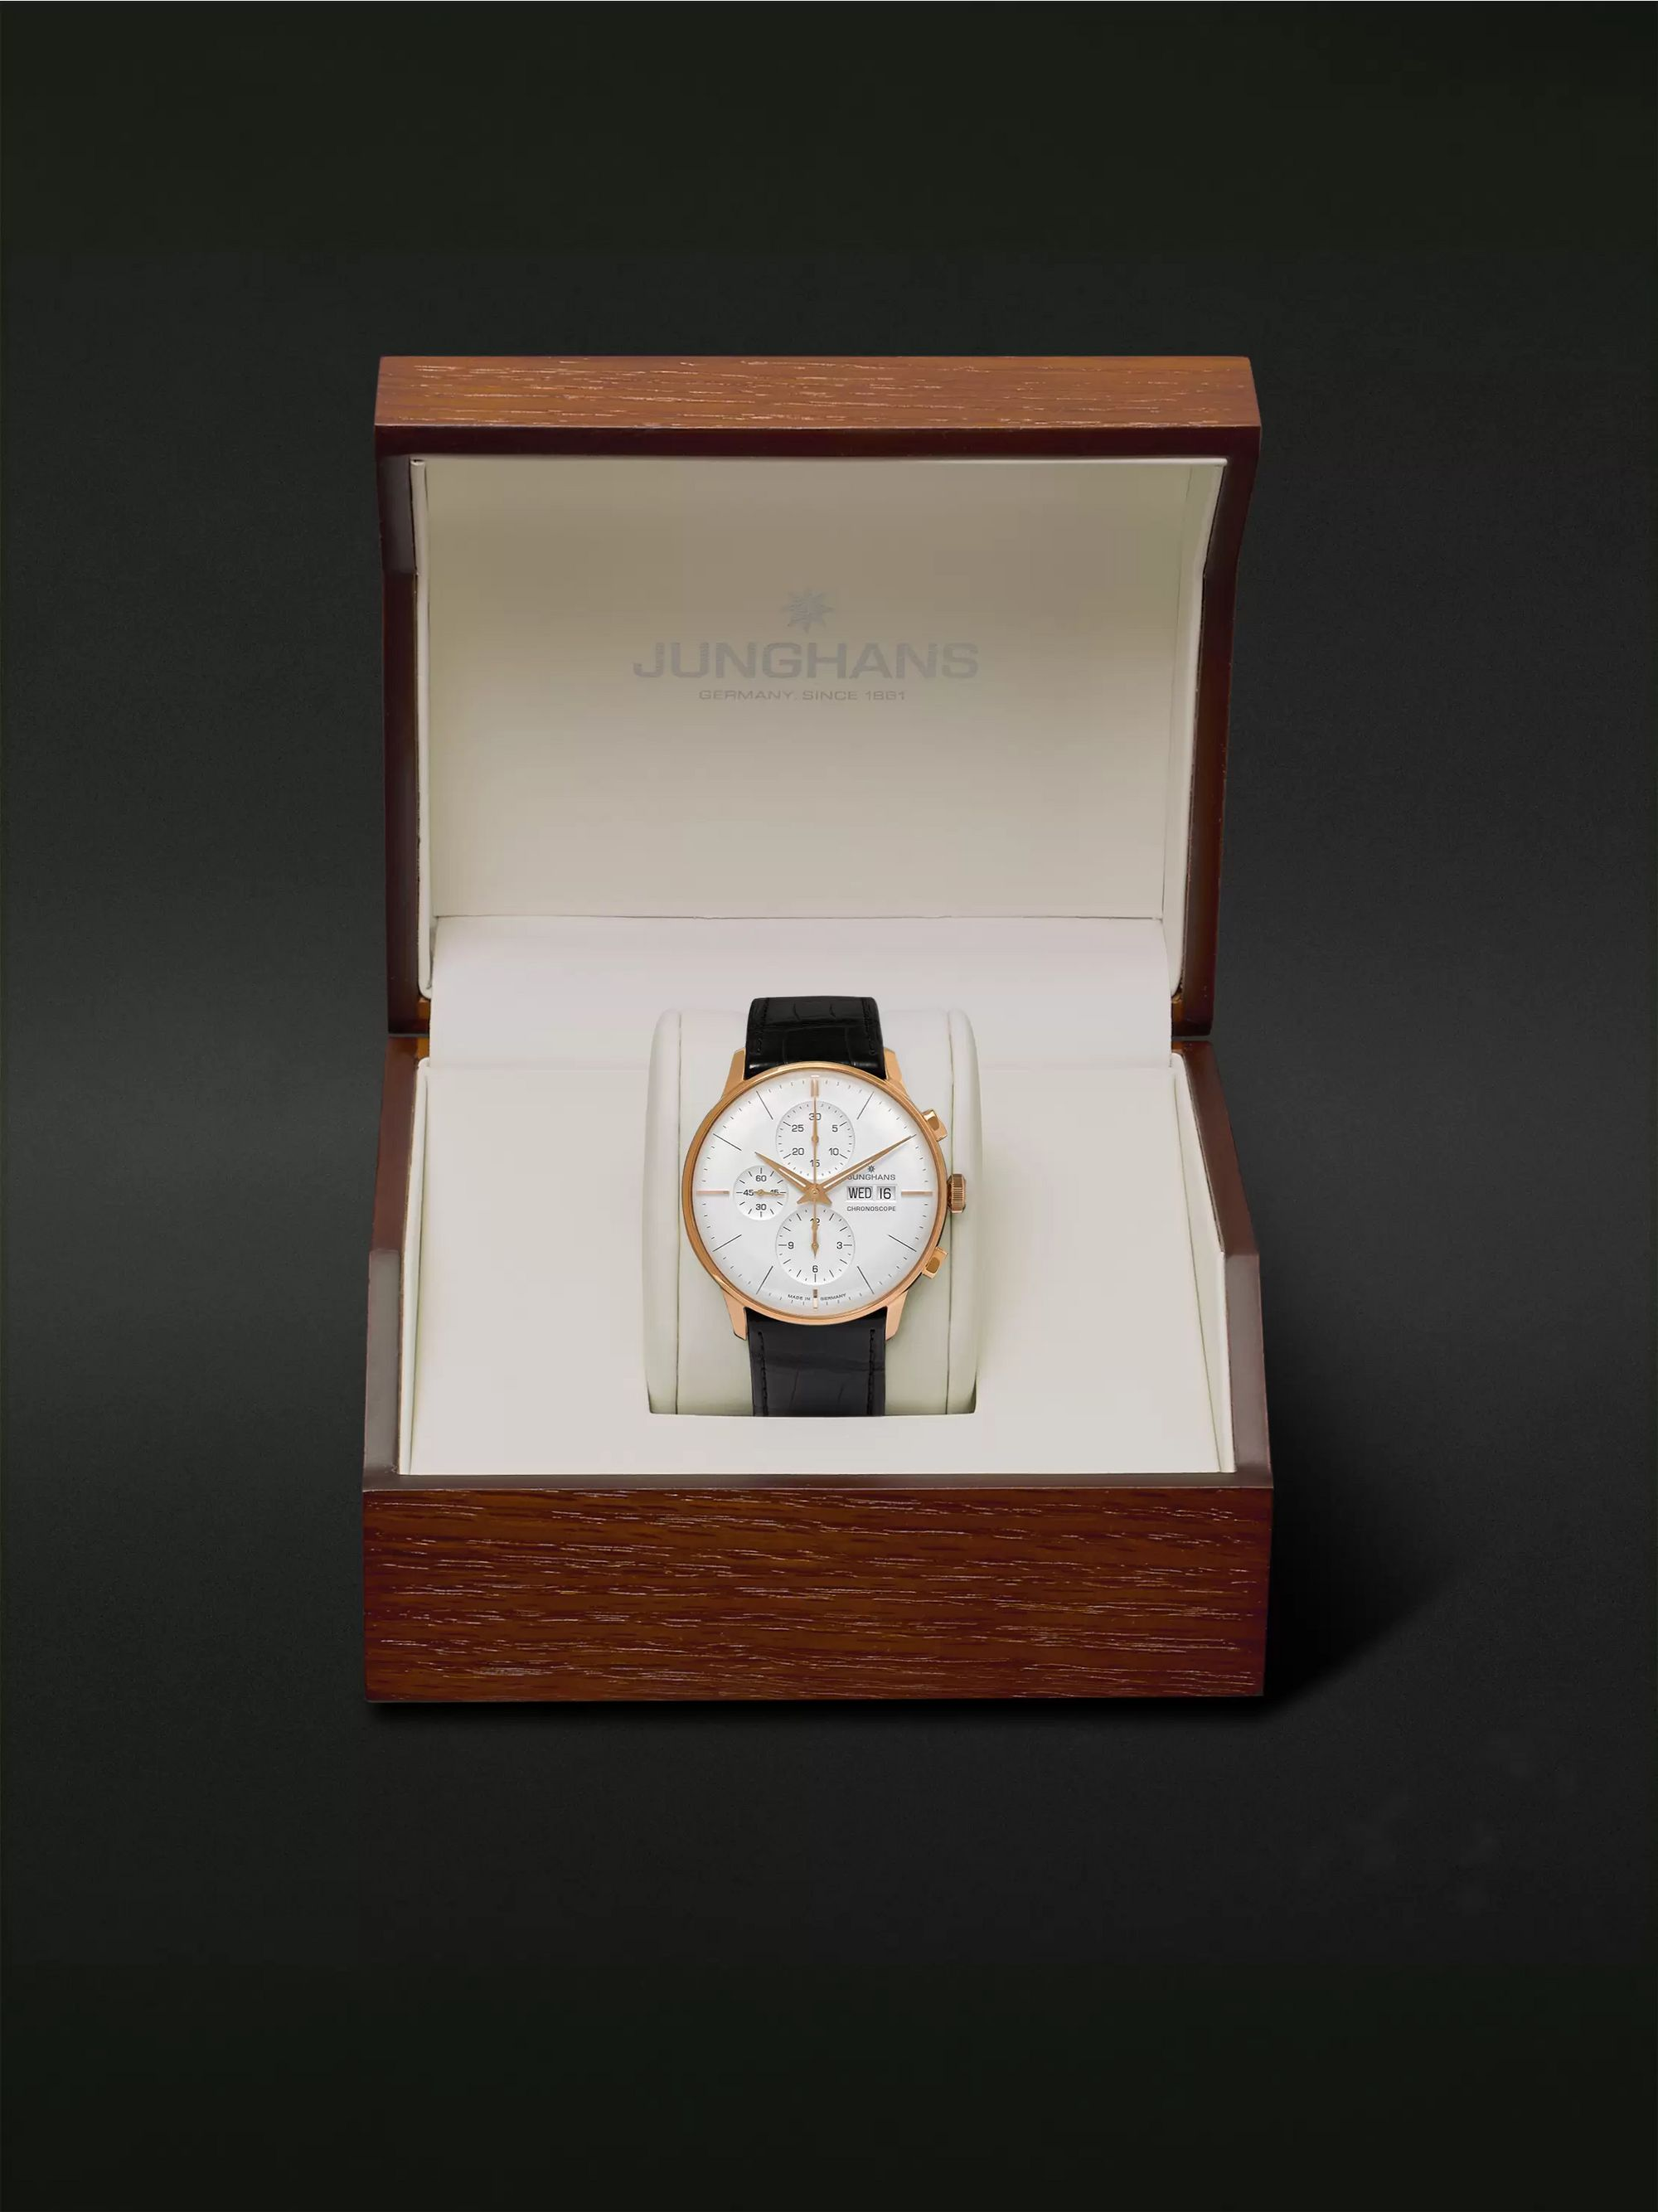 Junghans Meister Automatic Chronoscope 40mm Gold-Tone and Alligator Watch, Ref. No. 027/7323.01